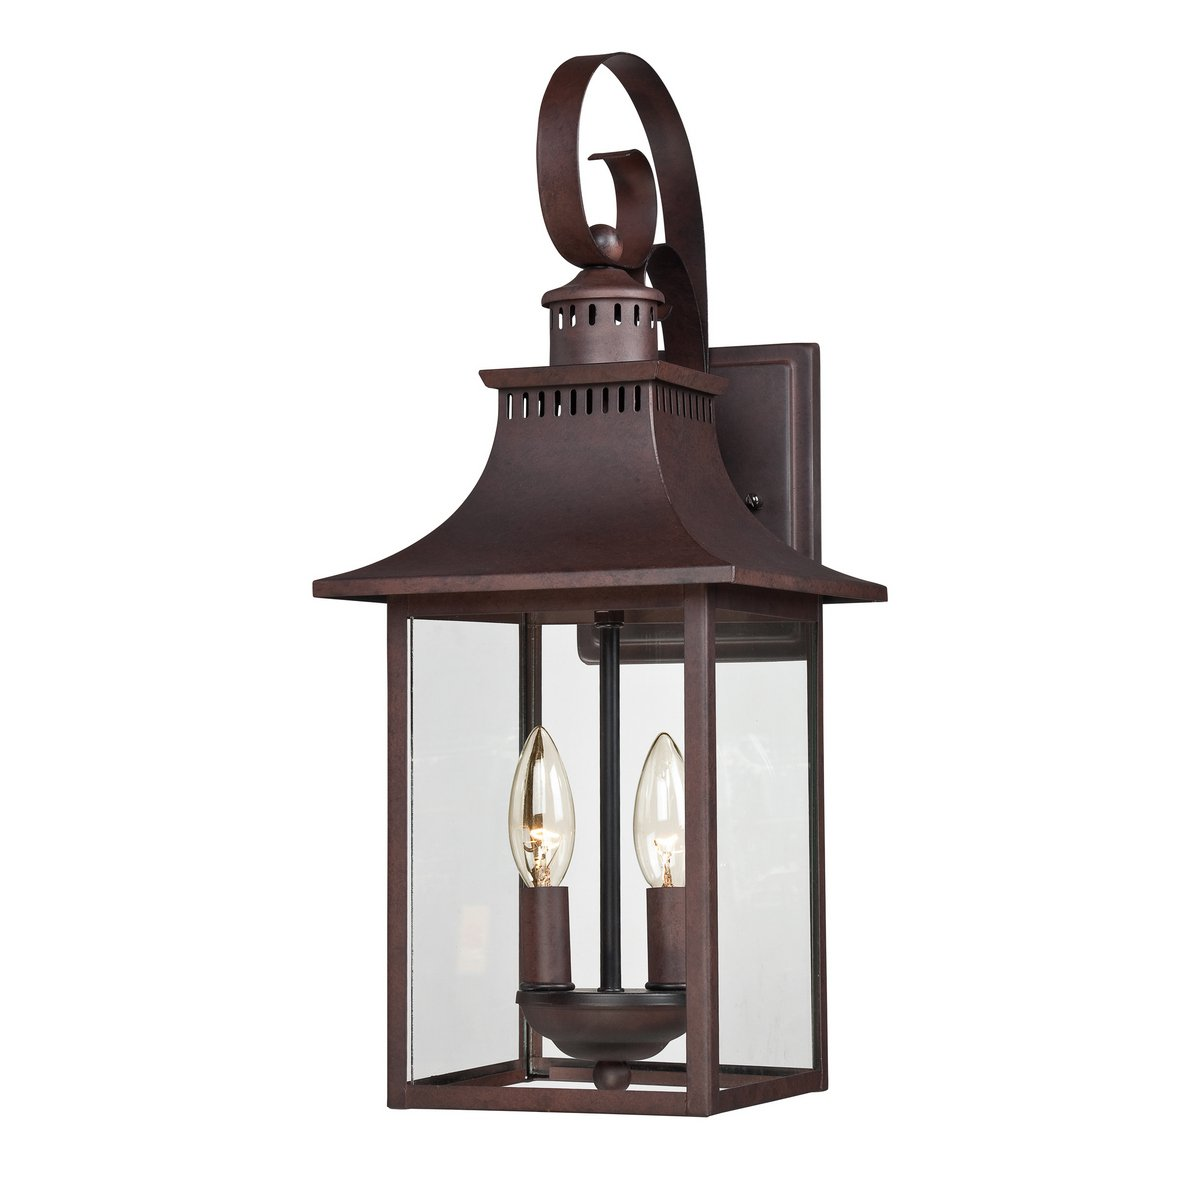 Quoizel CCR8408CU Traditional Chancellor Outdoor Lantern, Medium, Brown by Quoizel